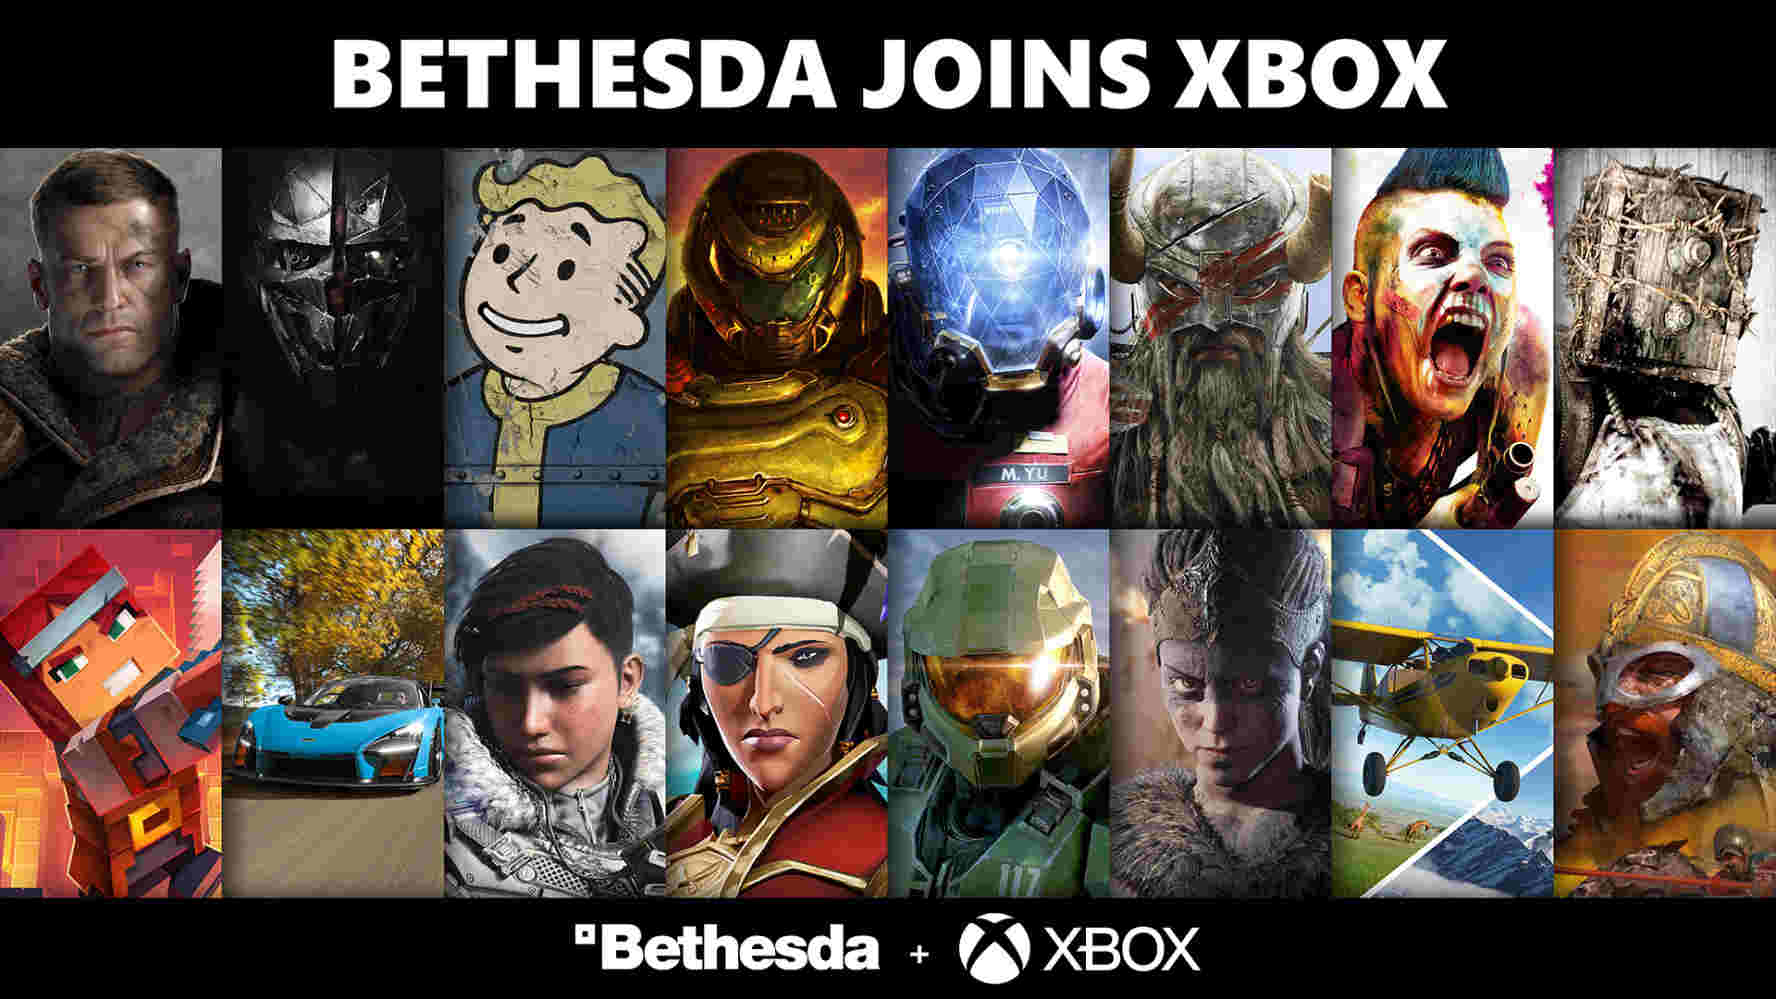 Several video game characters from Bethesda and Microsoft